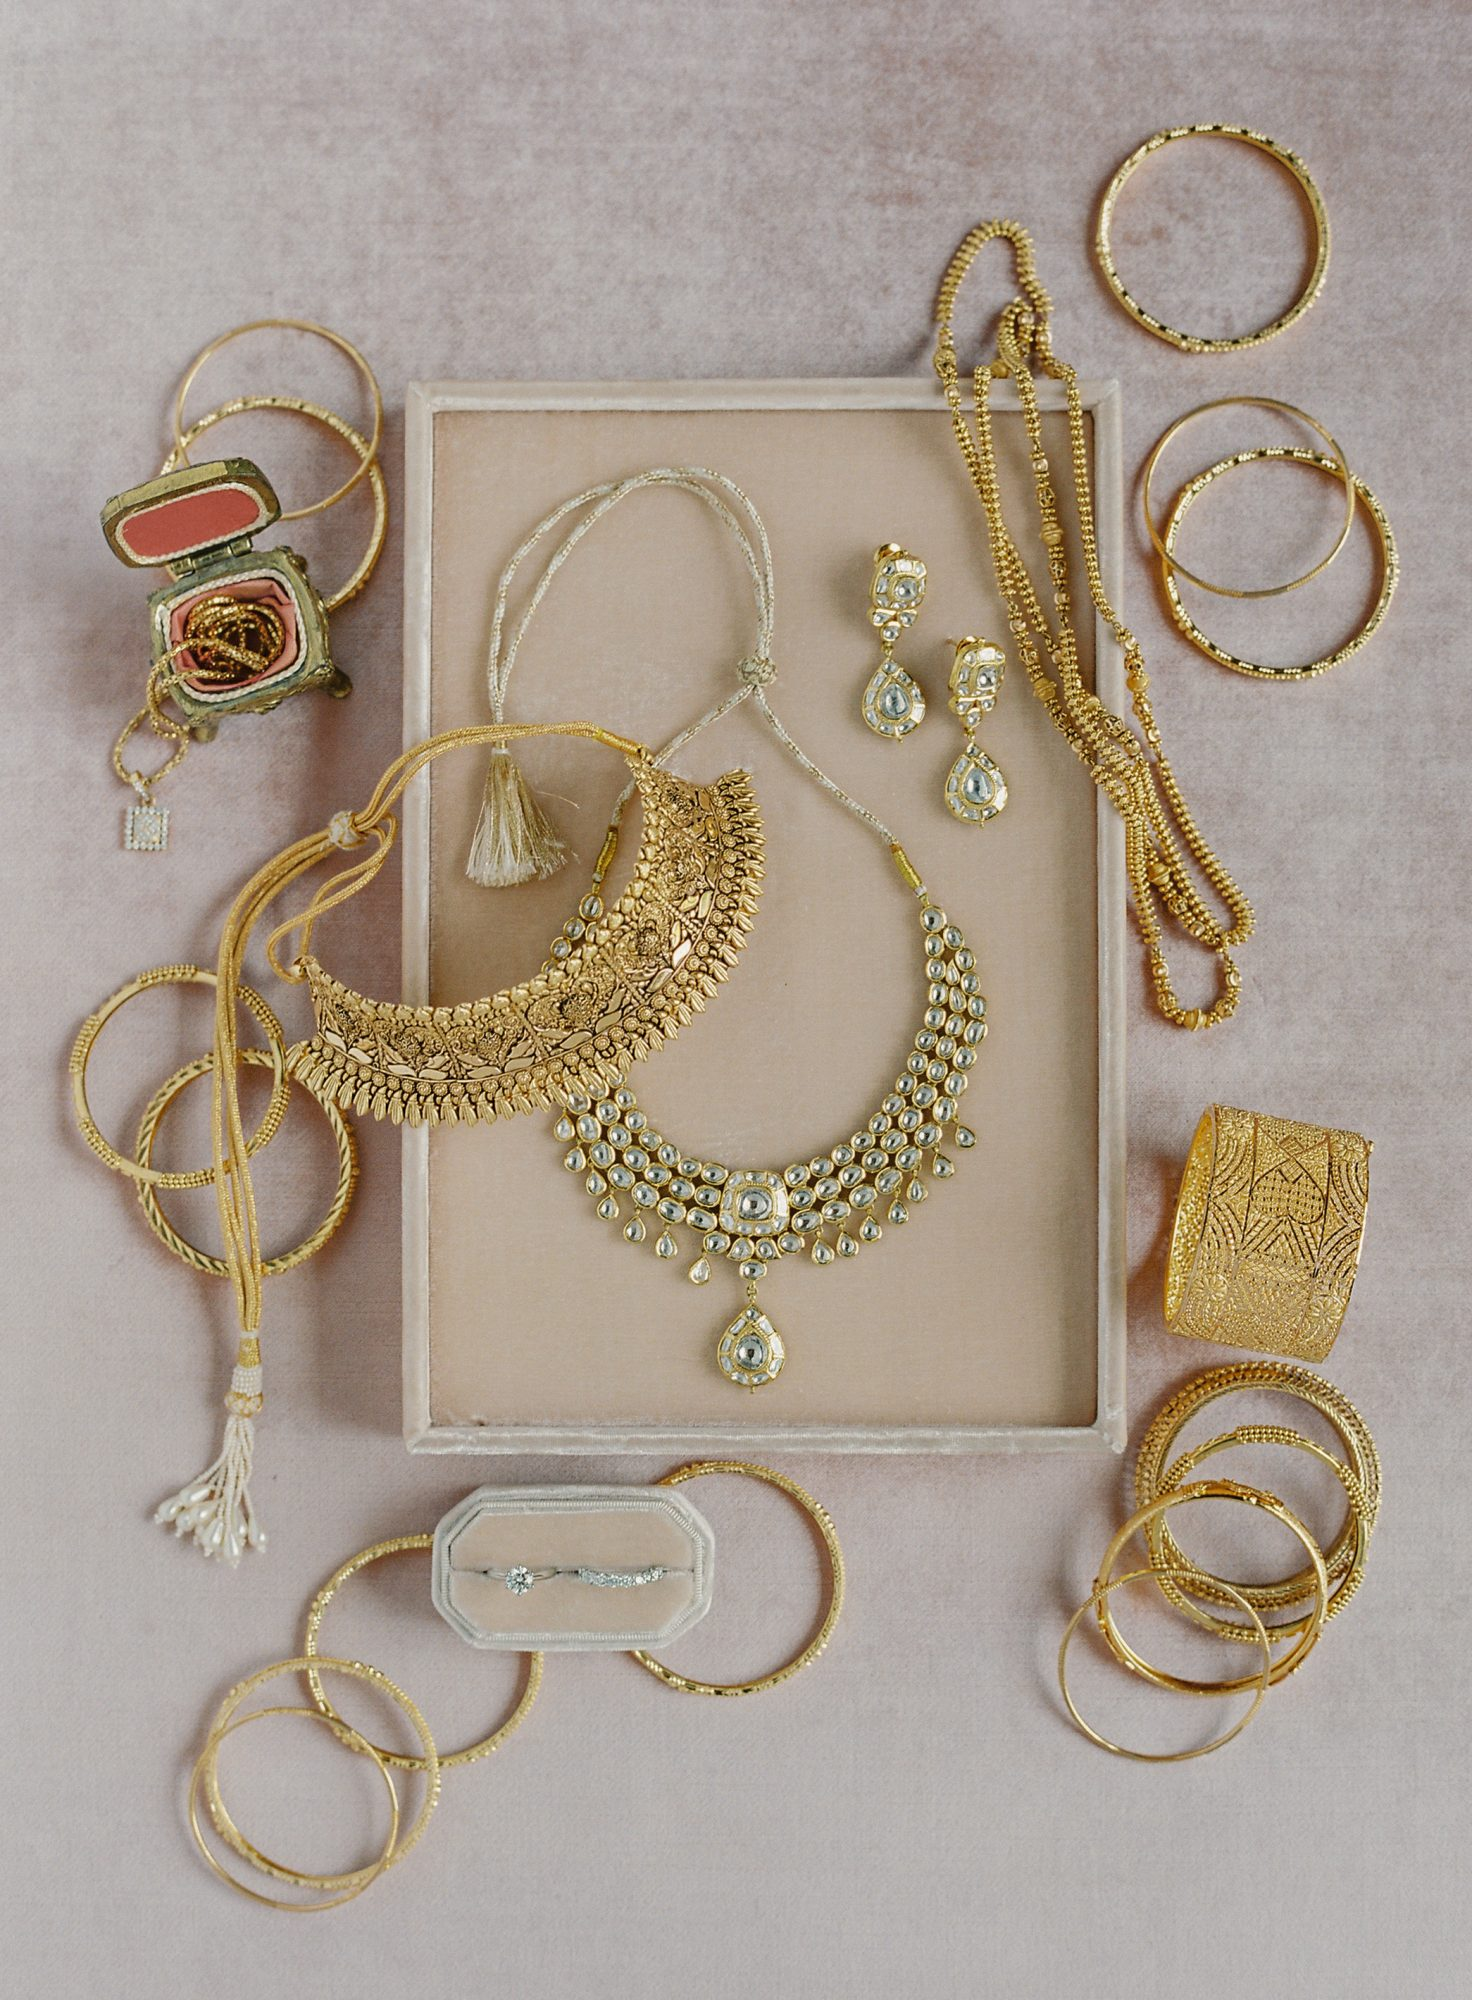 ronita ryan wedding jewelry and accessories